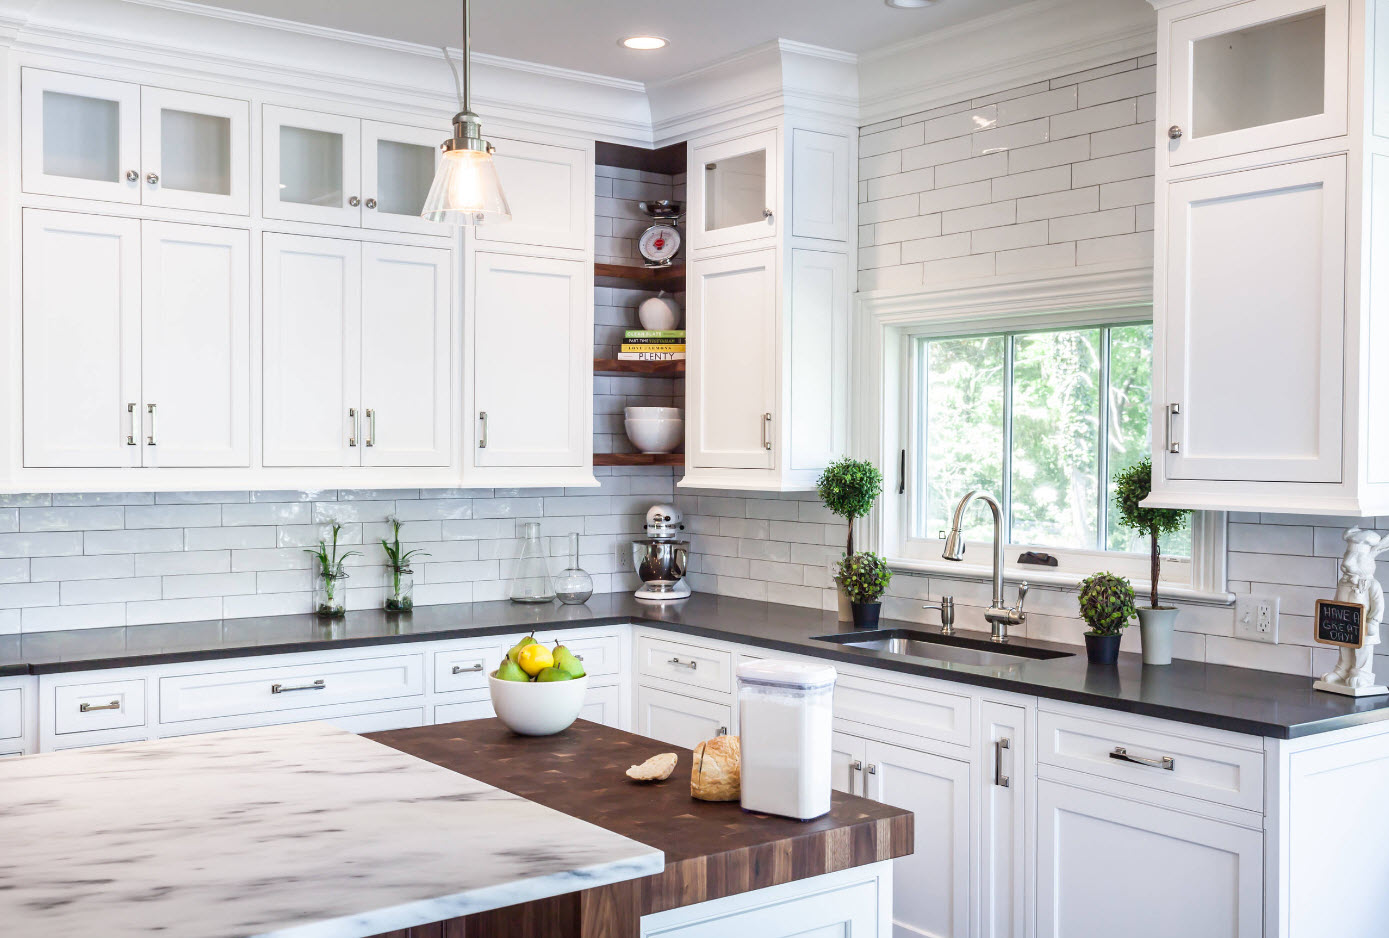 The angular design of the kitchen: the pros and cons 2